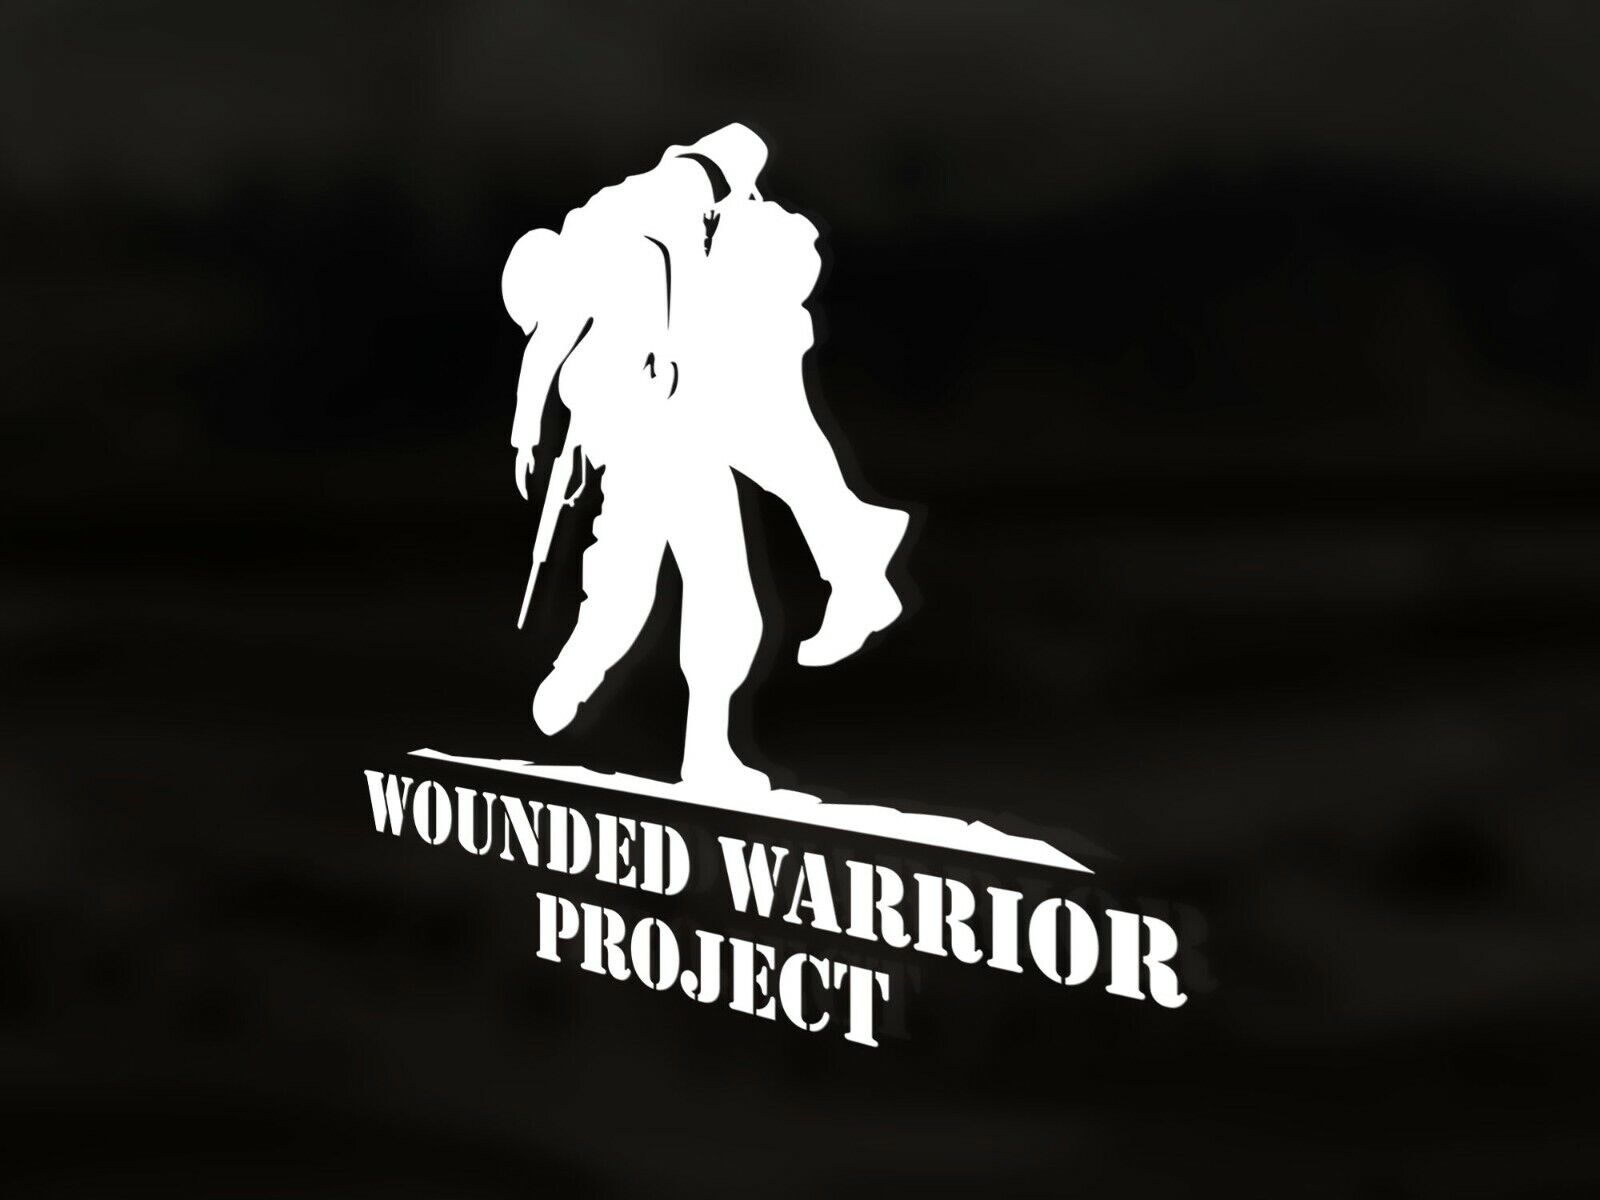 Home Decoration - Wounded Warrior Project Vinyl Decal Sticker